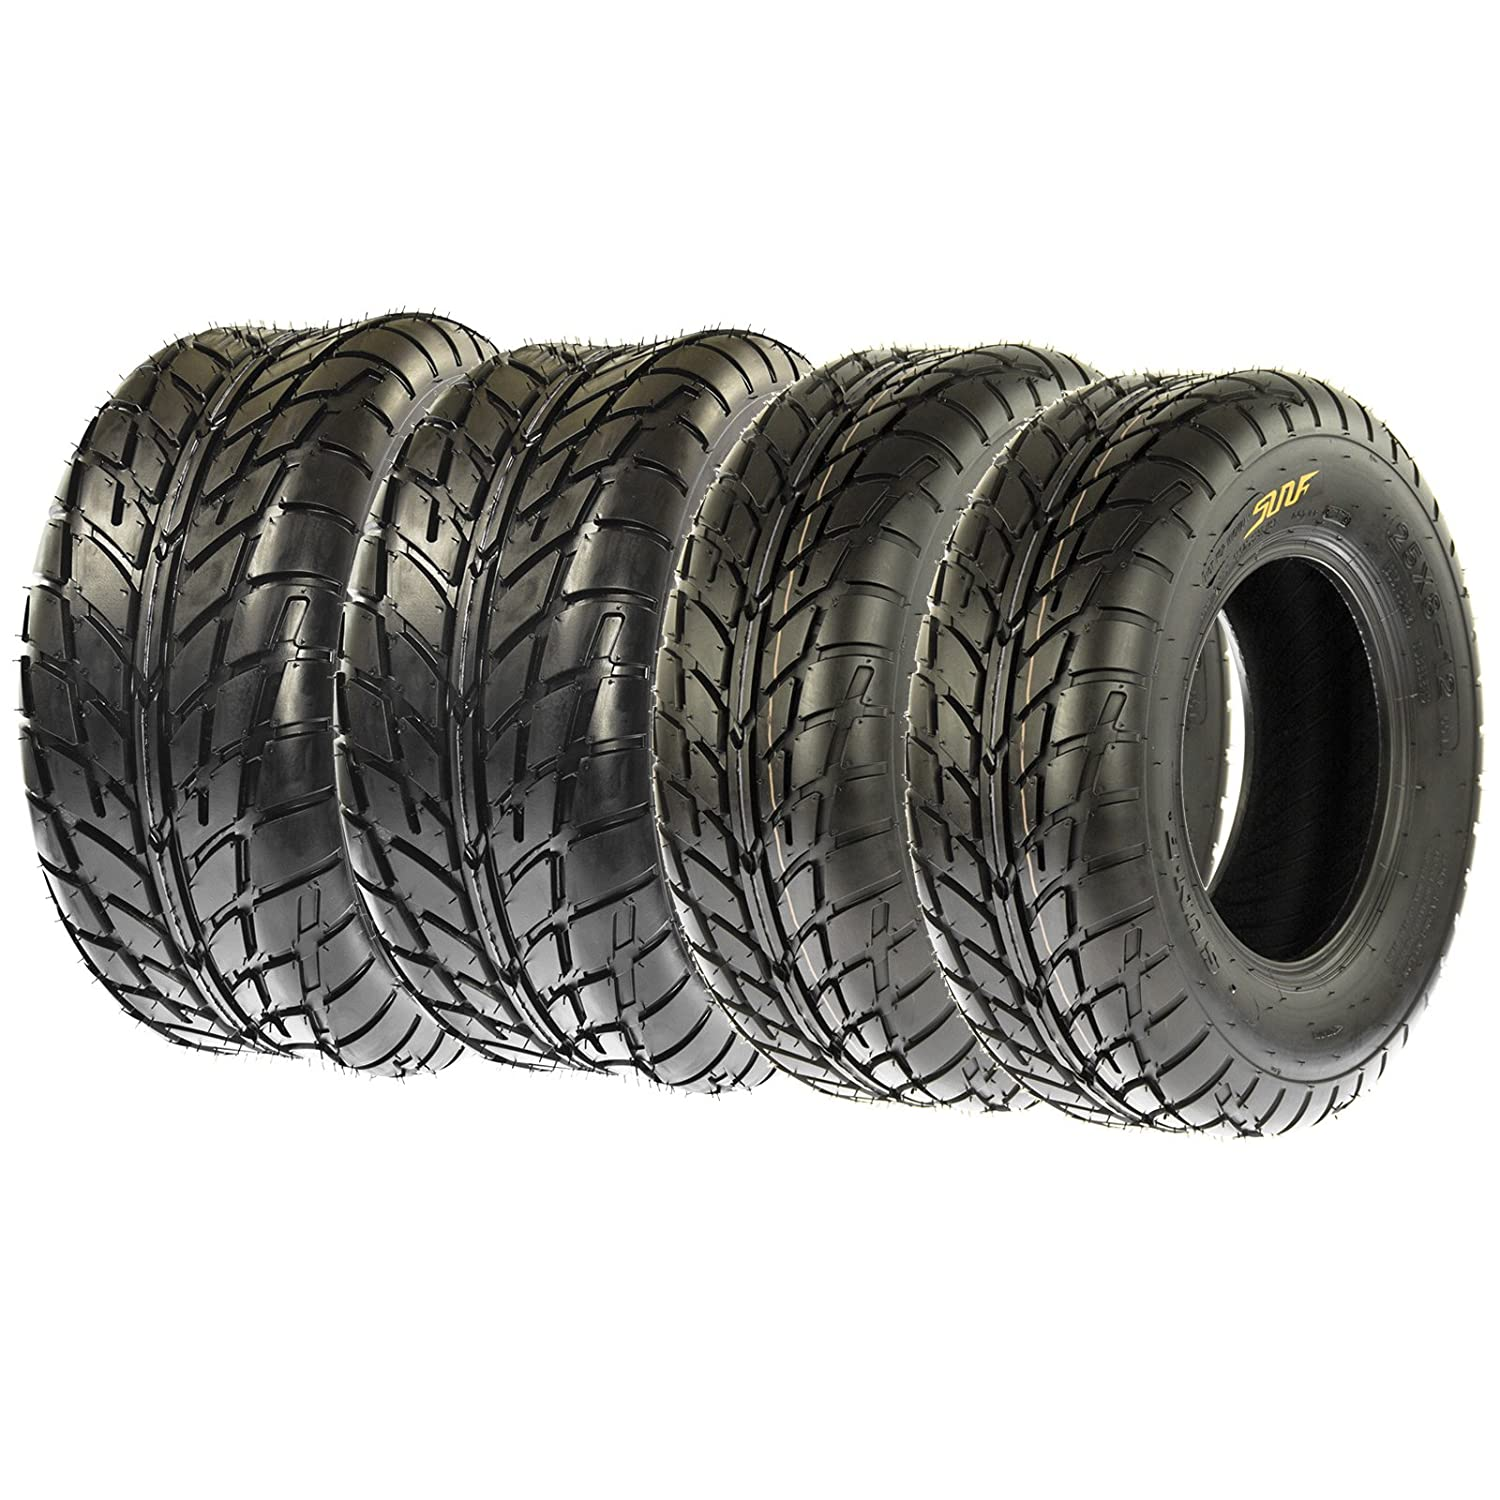 SunF Sport Race Replacement ALL TERRAIN ATV UTV 6 Ply Tires 21x7-10 & 20x10-9 Tubeless A021, [Set of 4] LCF1|A021|210710|201009|x4